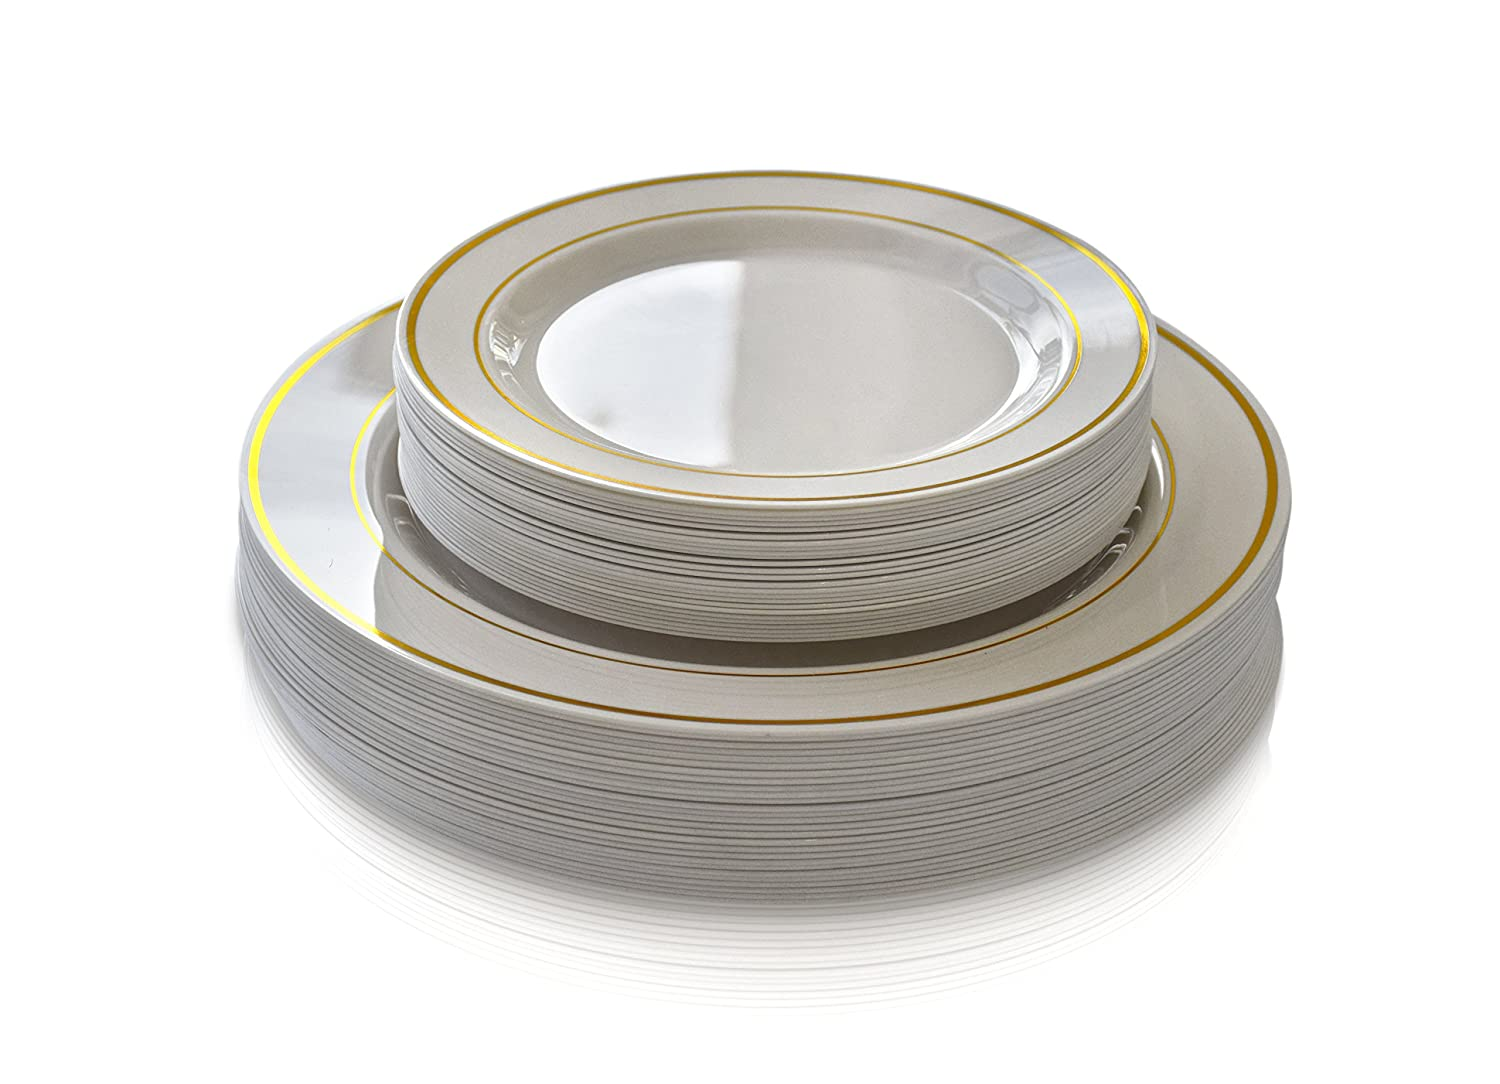 Amazon.com  OCCASIONS  50 Pack Premium Disposable Plastic plates( 25 Dinner + 25 Salad plates) Ivory/ Gold Rim Kitchen u0026 Dining  sc 1 st  Amazon.com & Amazon.com: